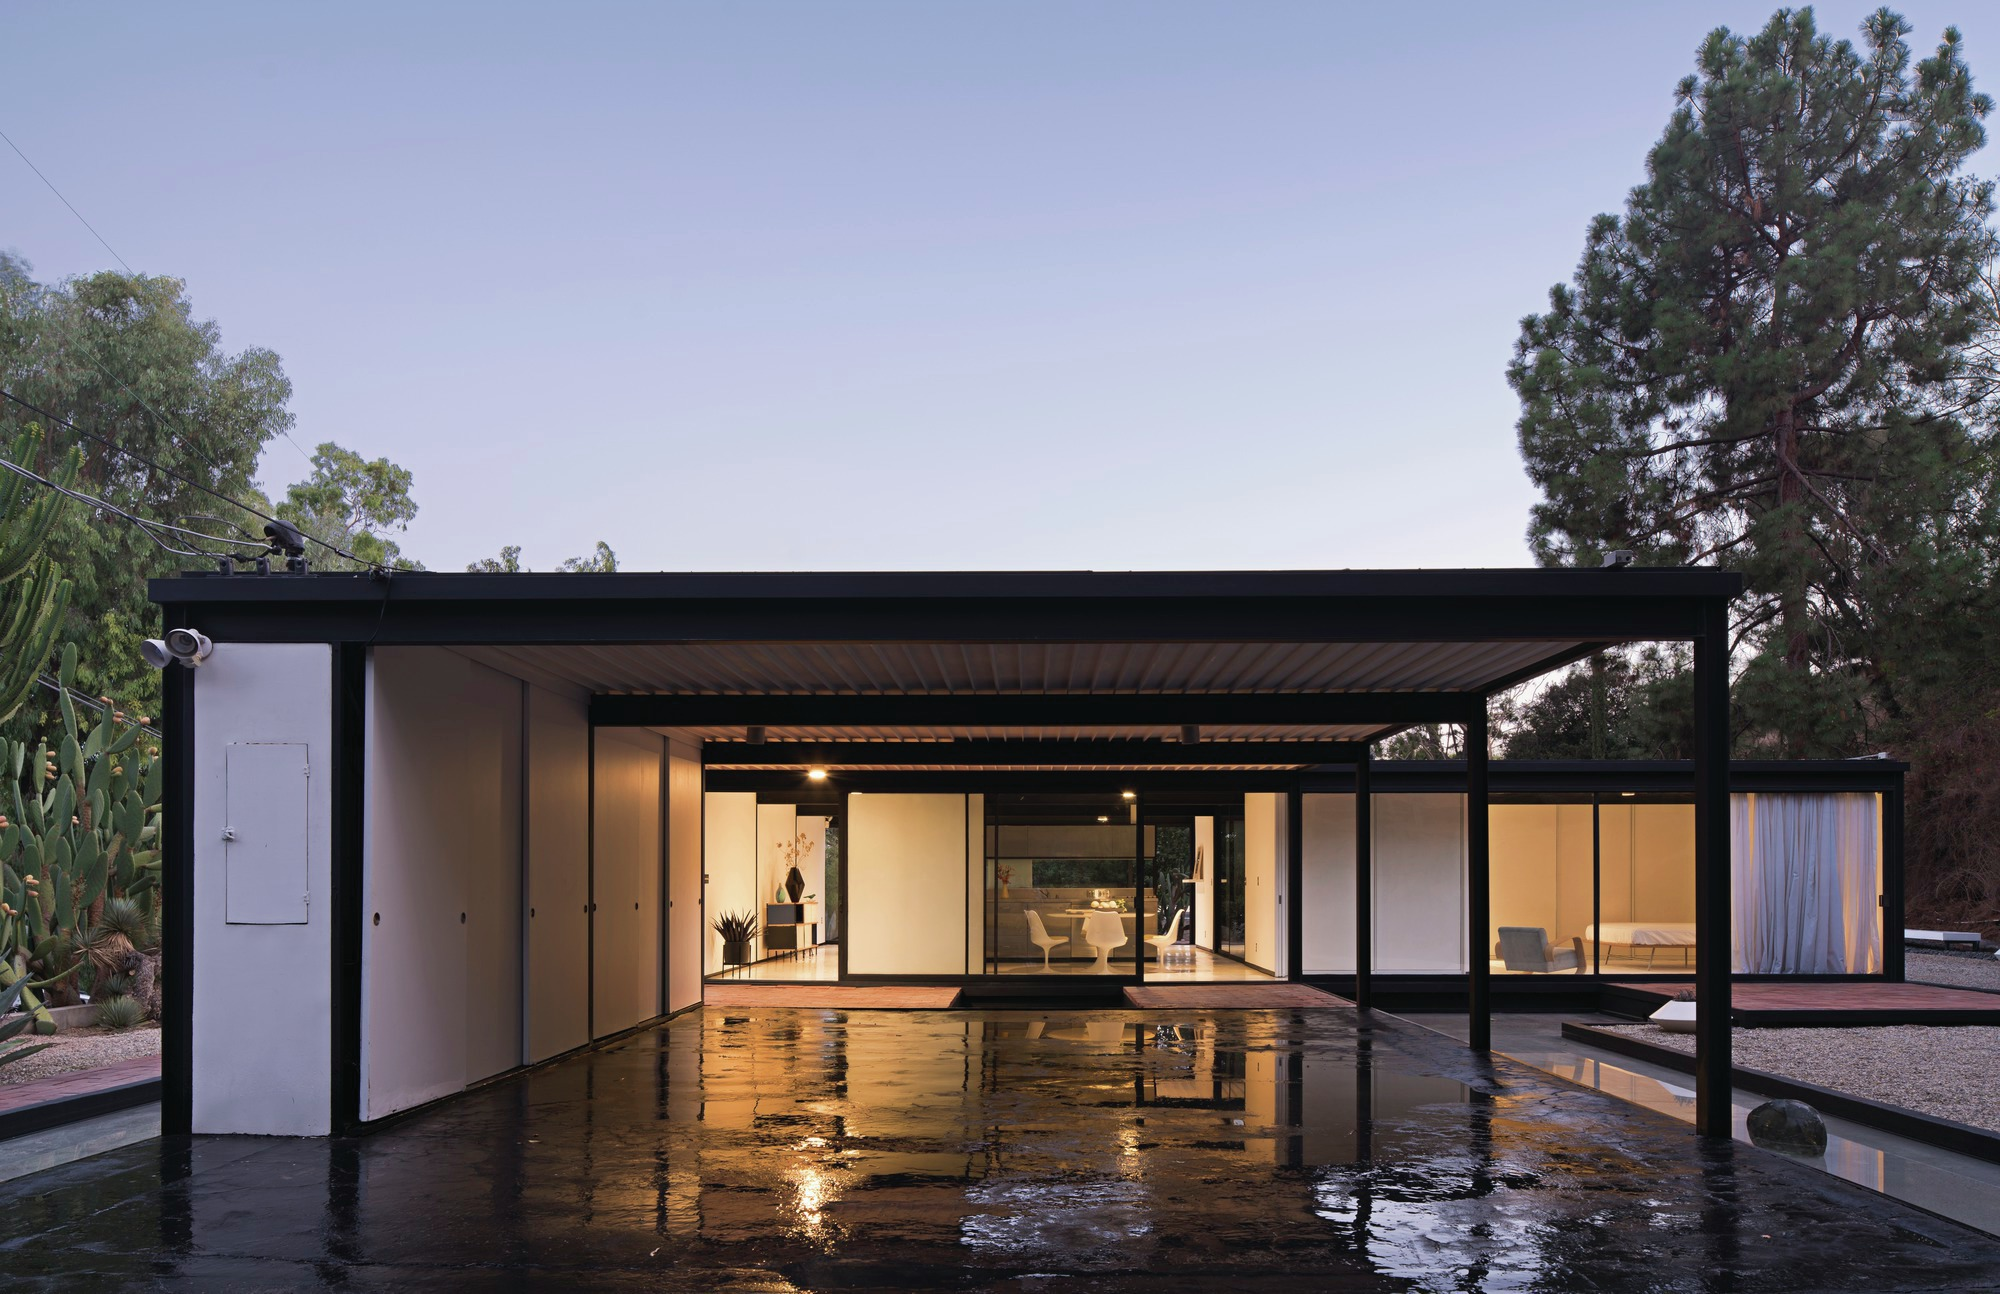 Pierre Koenig S Case Study House 21 Hits The Market